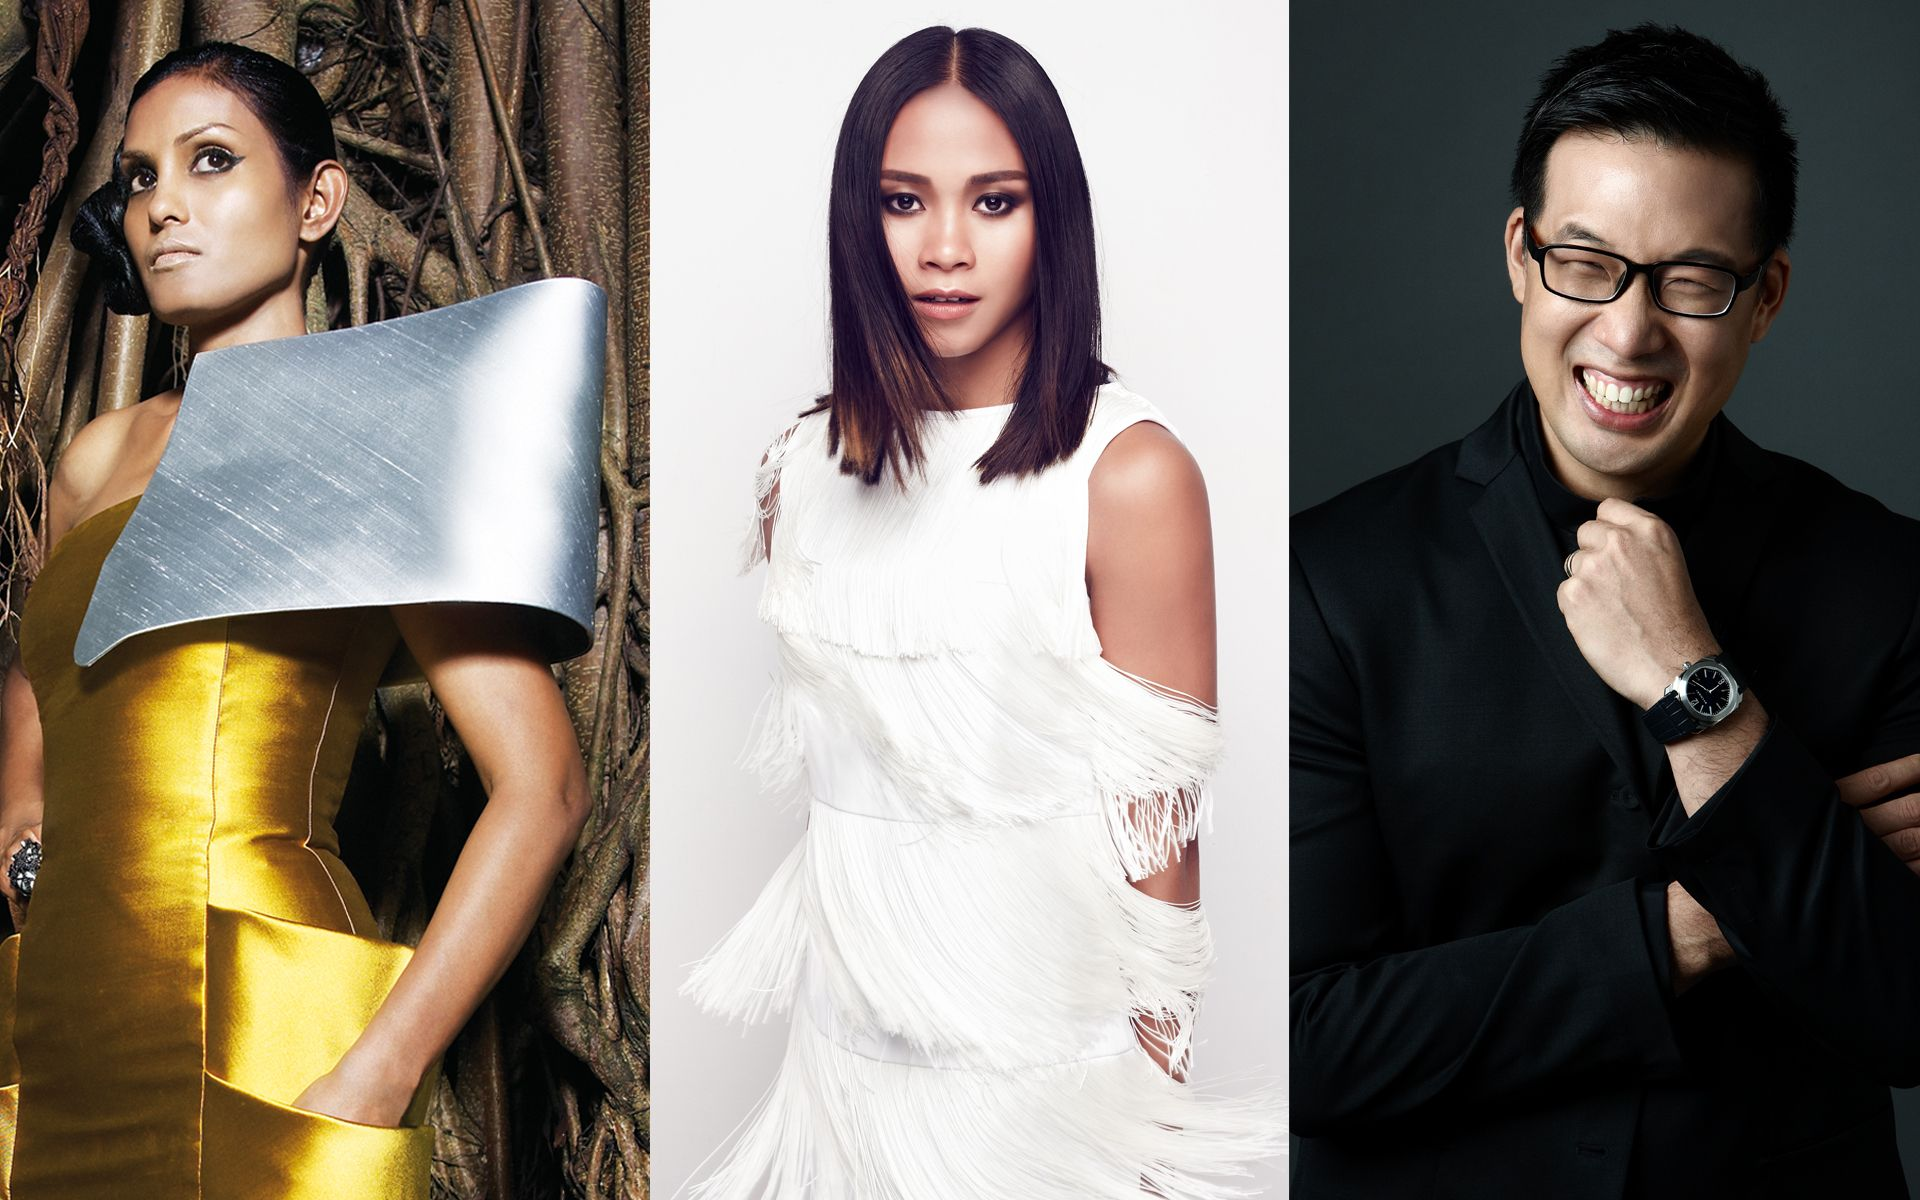 How Did You Feel About Making The Cover? Malaysia Tatler Caught Up With 6 Cover Stars